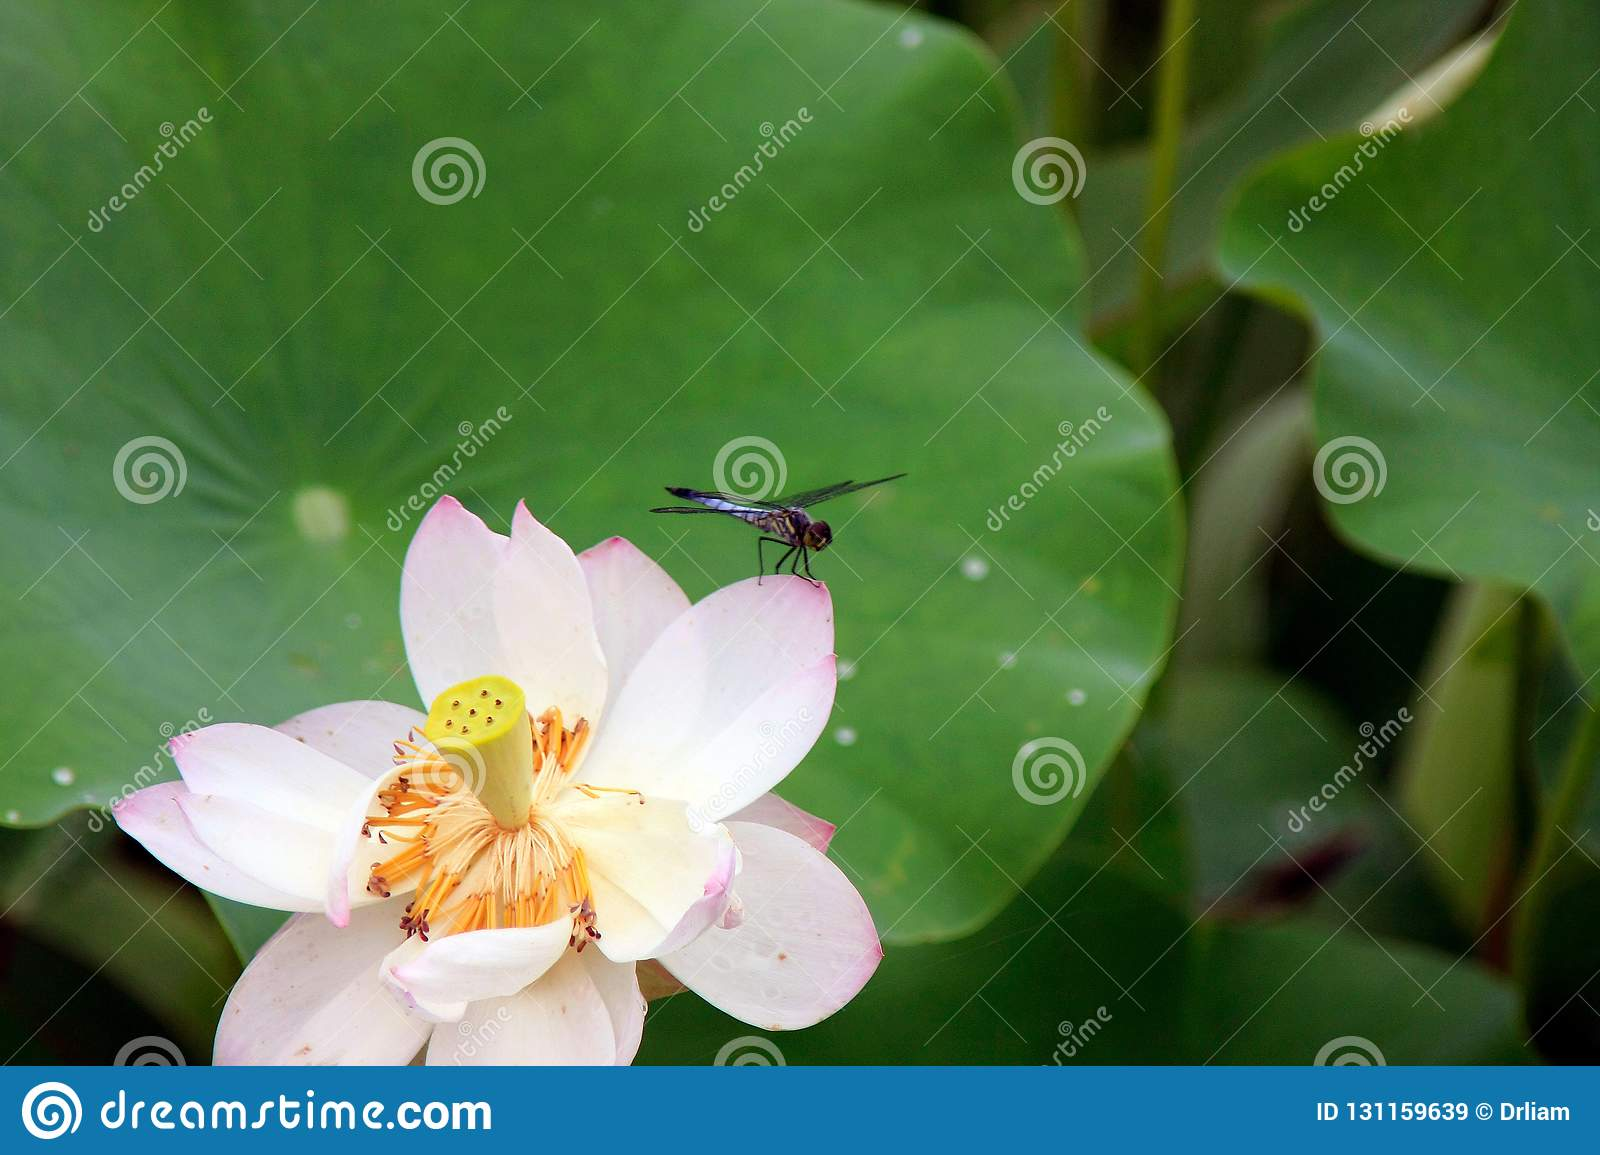 Dragonflies And Lotus Flowers Stock Image Image Of Charming Pond